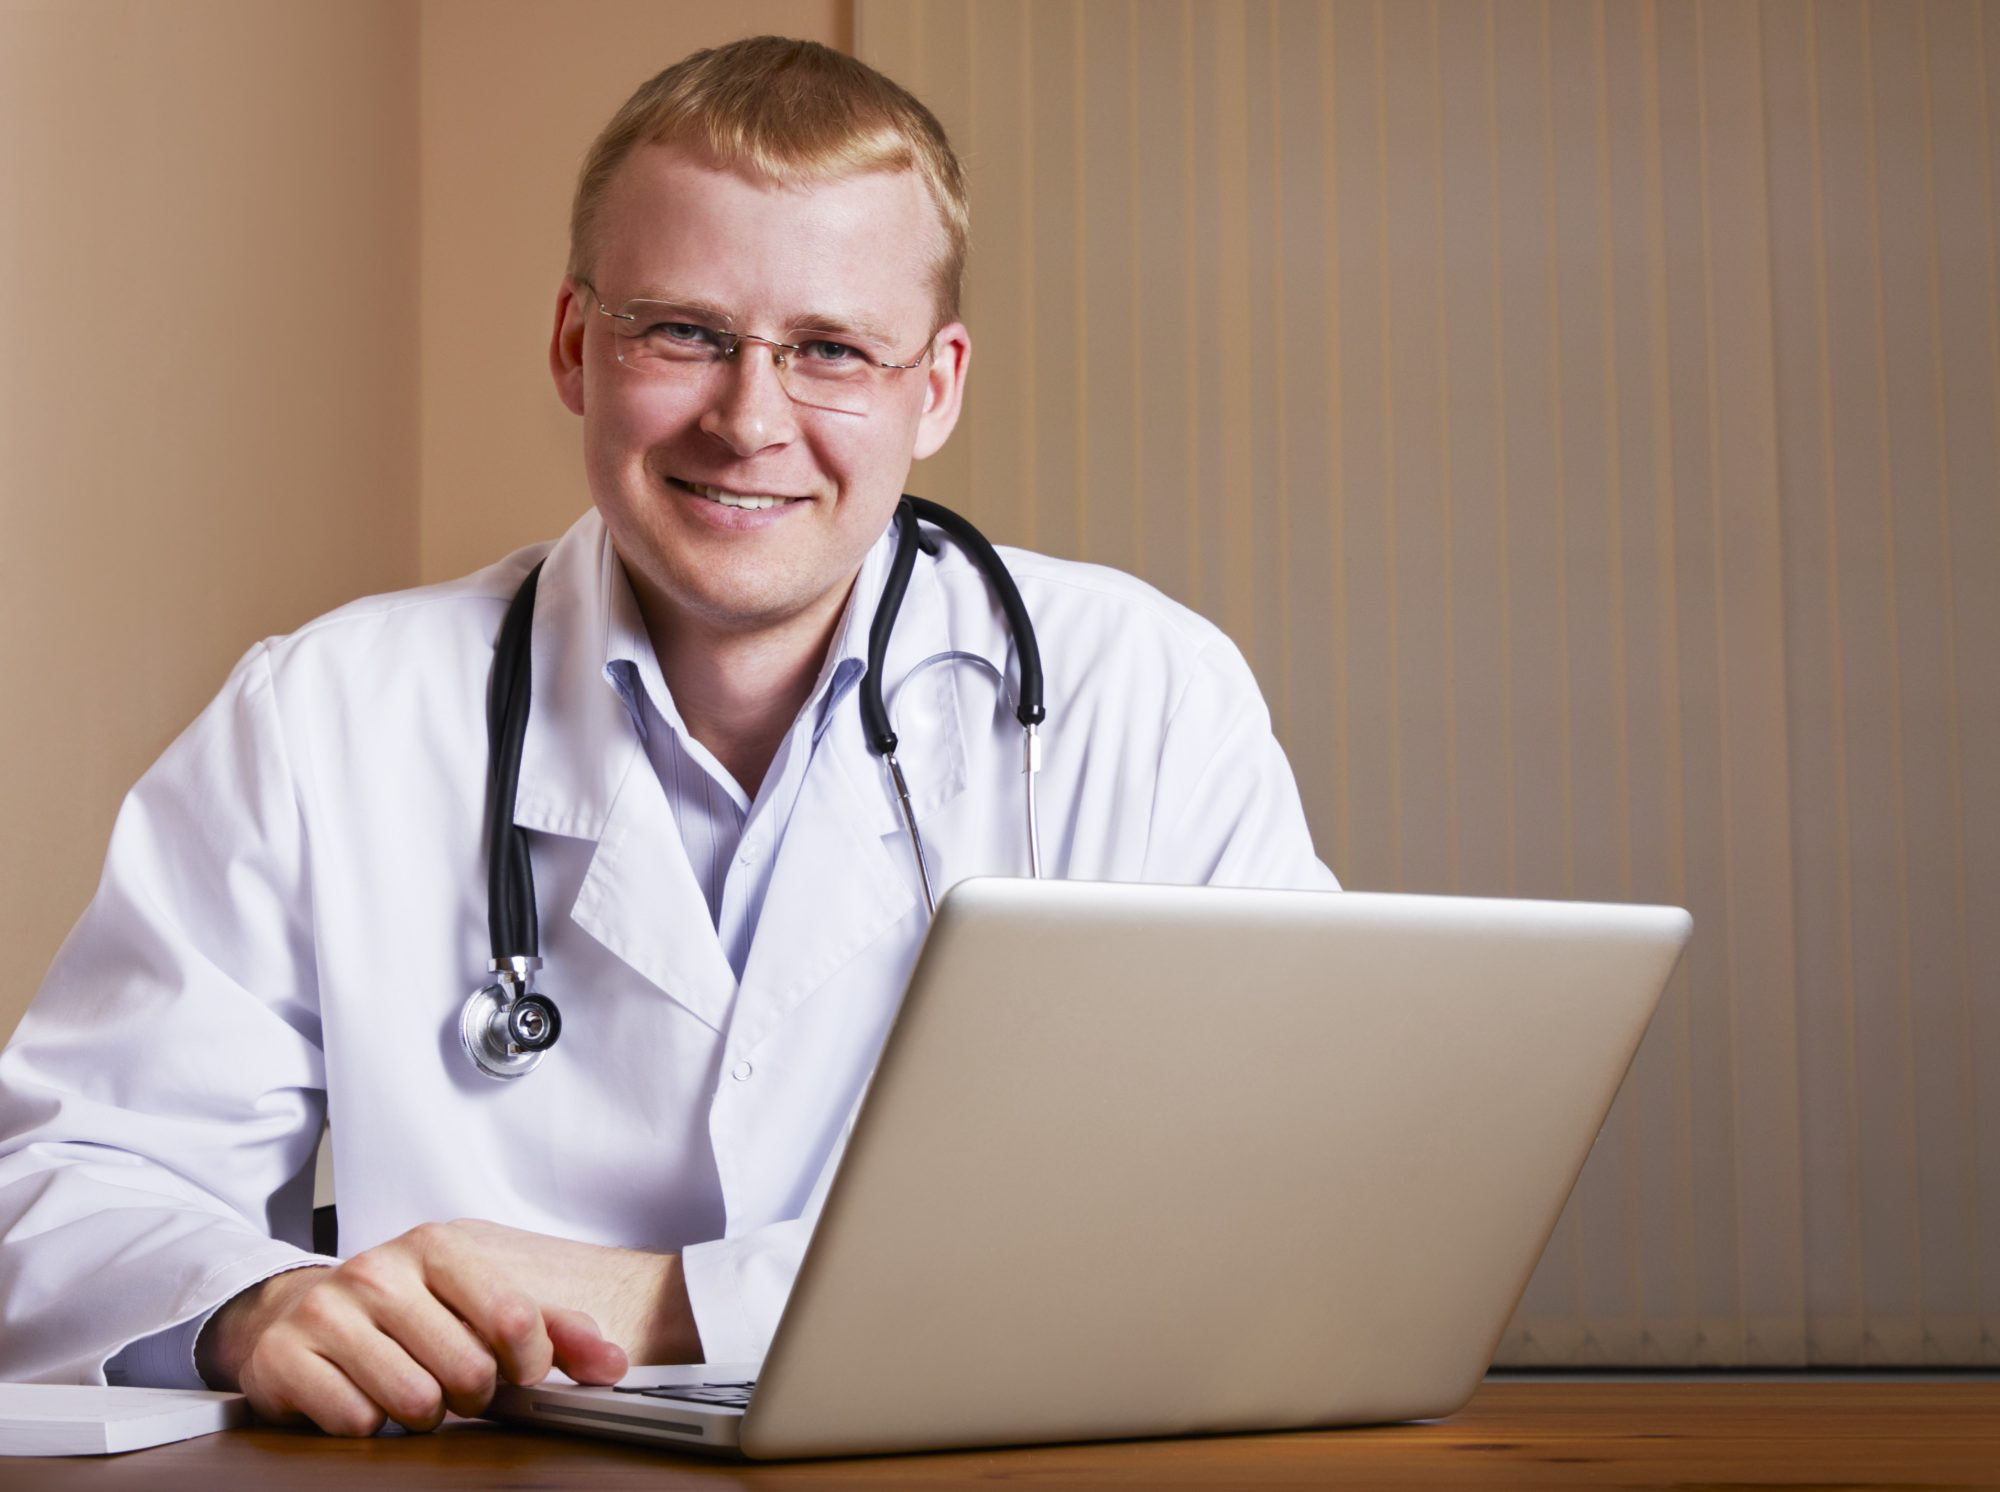 USMLE Preparation course